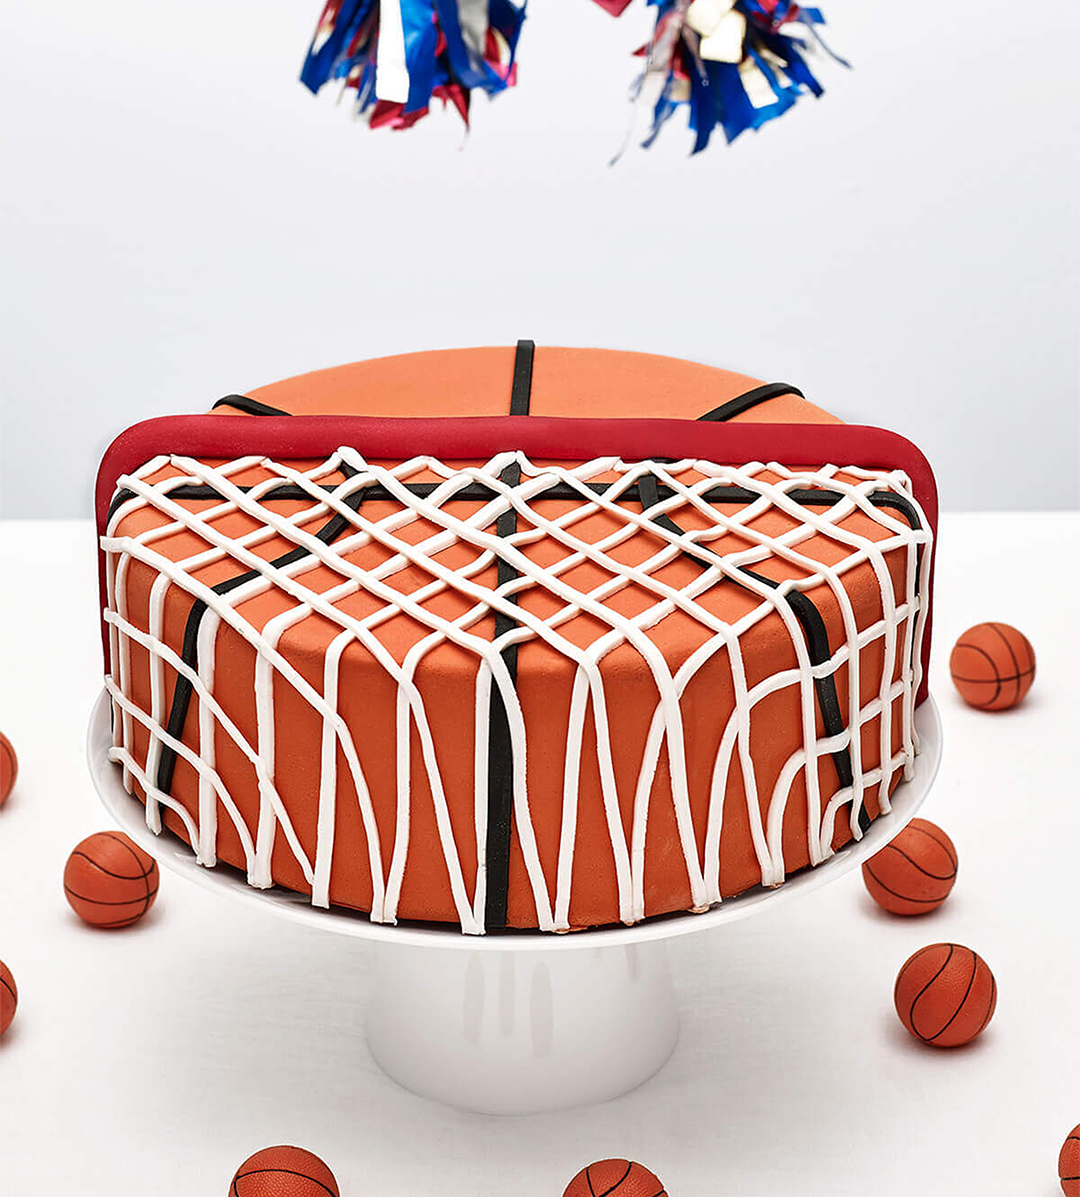 Photos Of Basketball Cakes